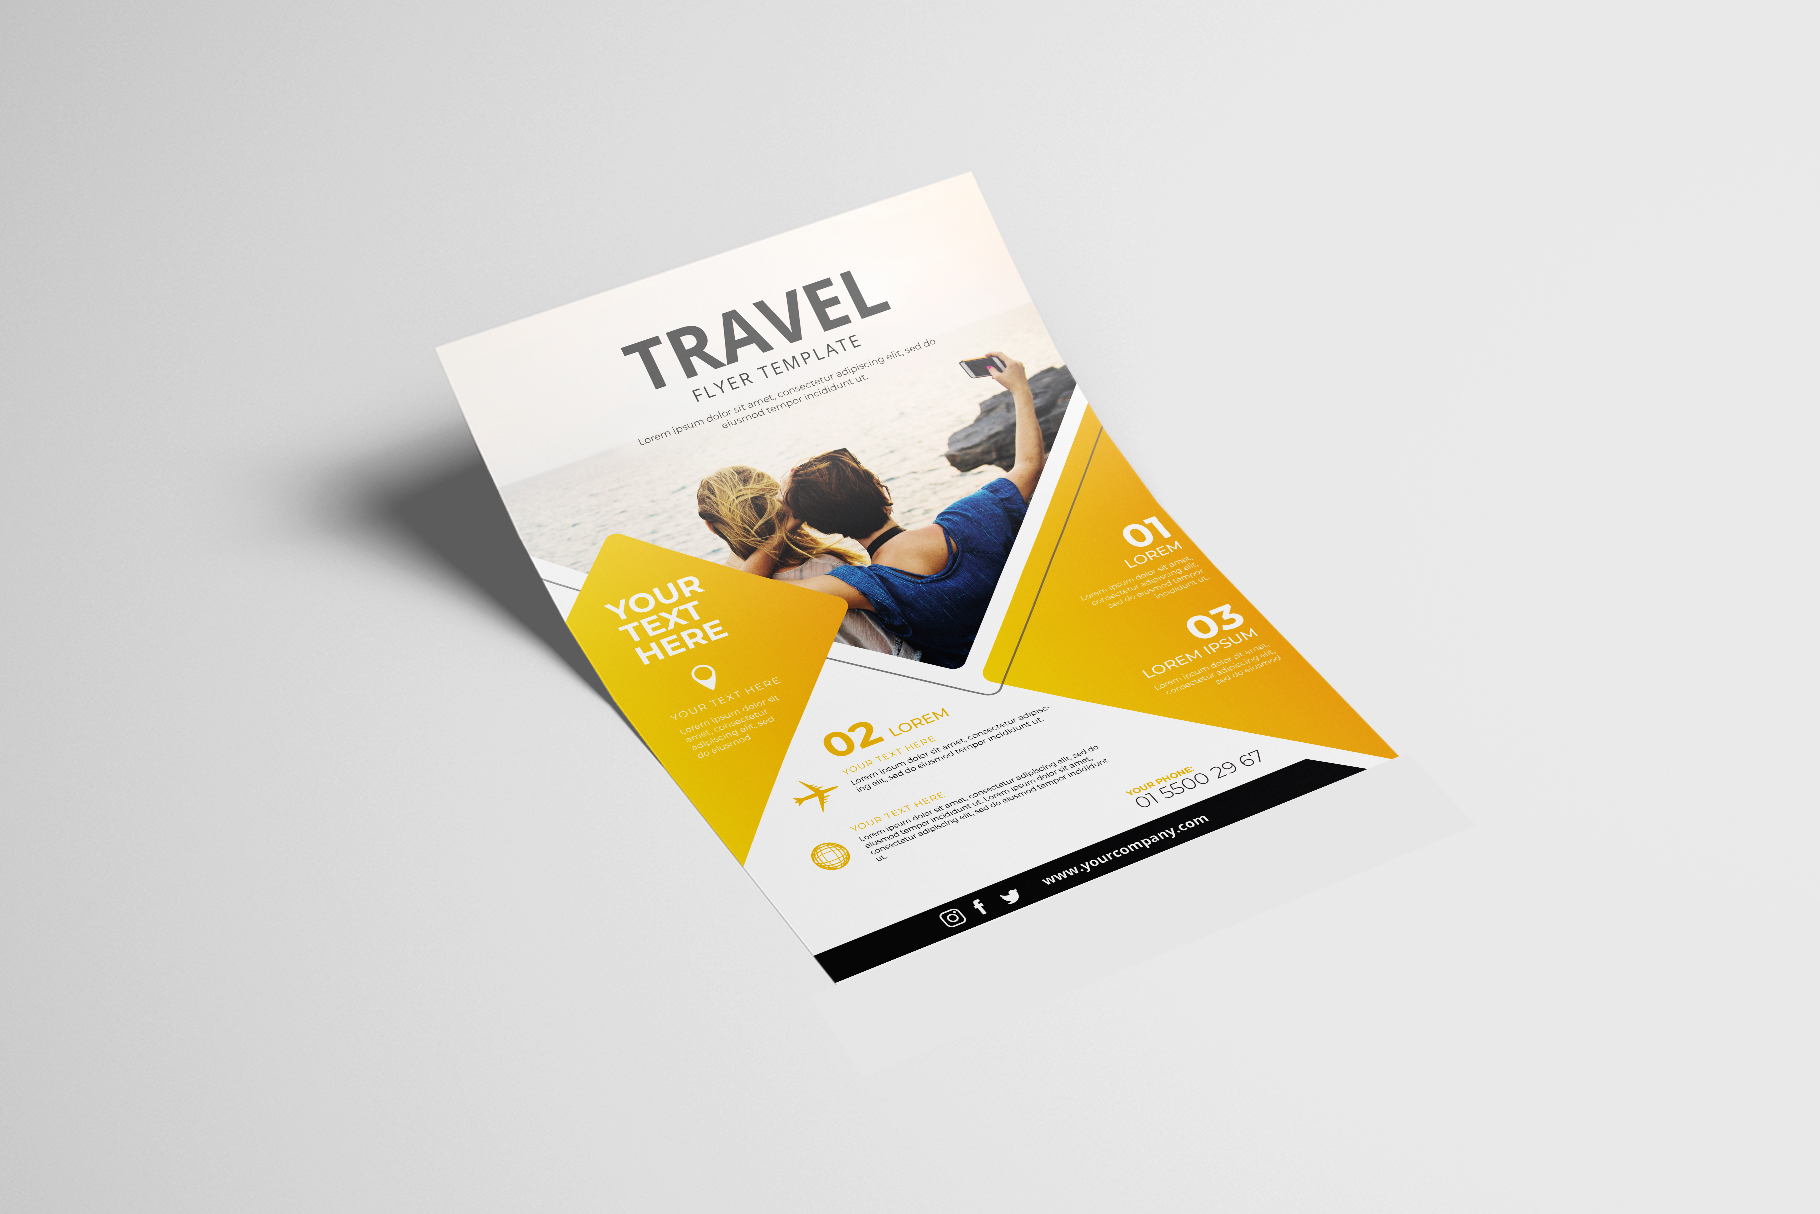 Travel Flyer Vol. 01 example image 2